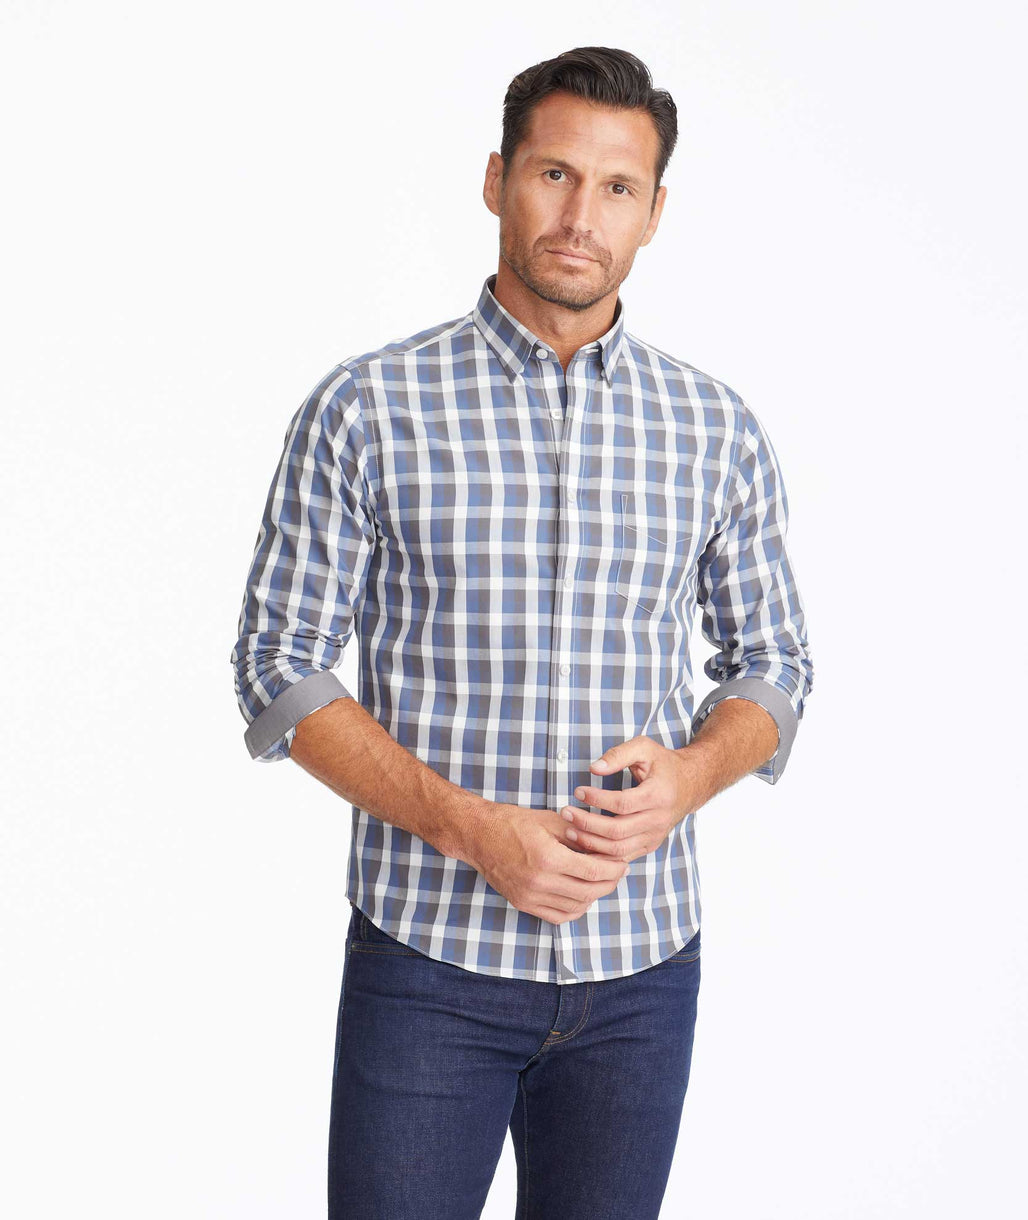 Model wearing a Blue Wrinkle-Free Altamura Shirt